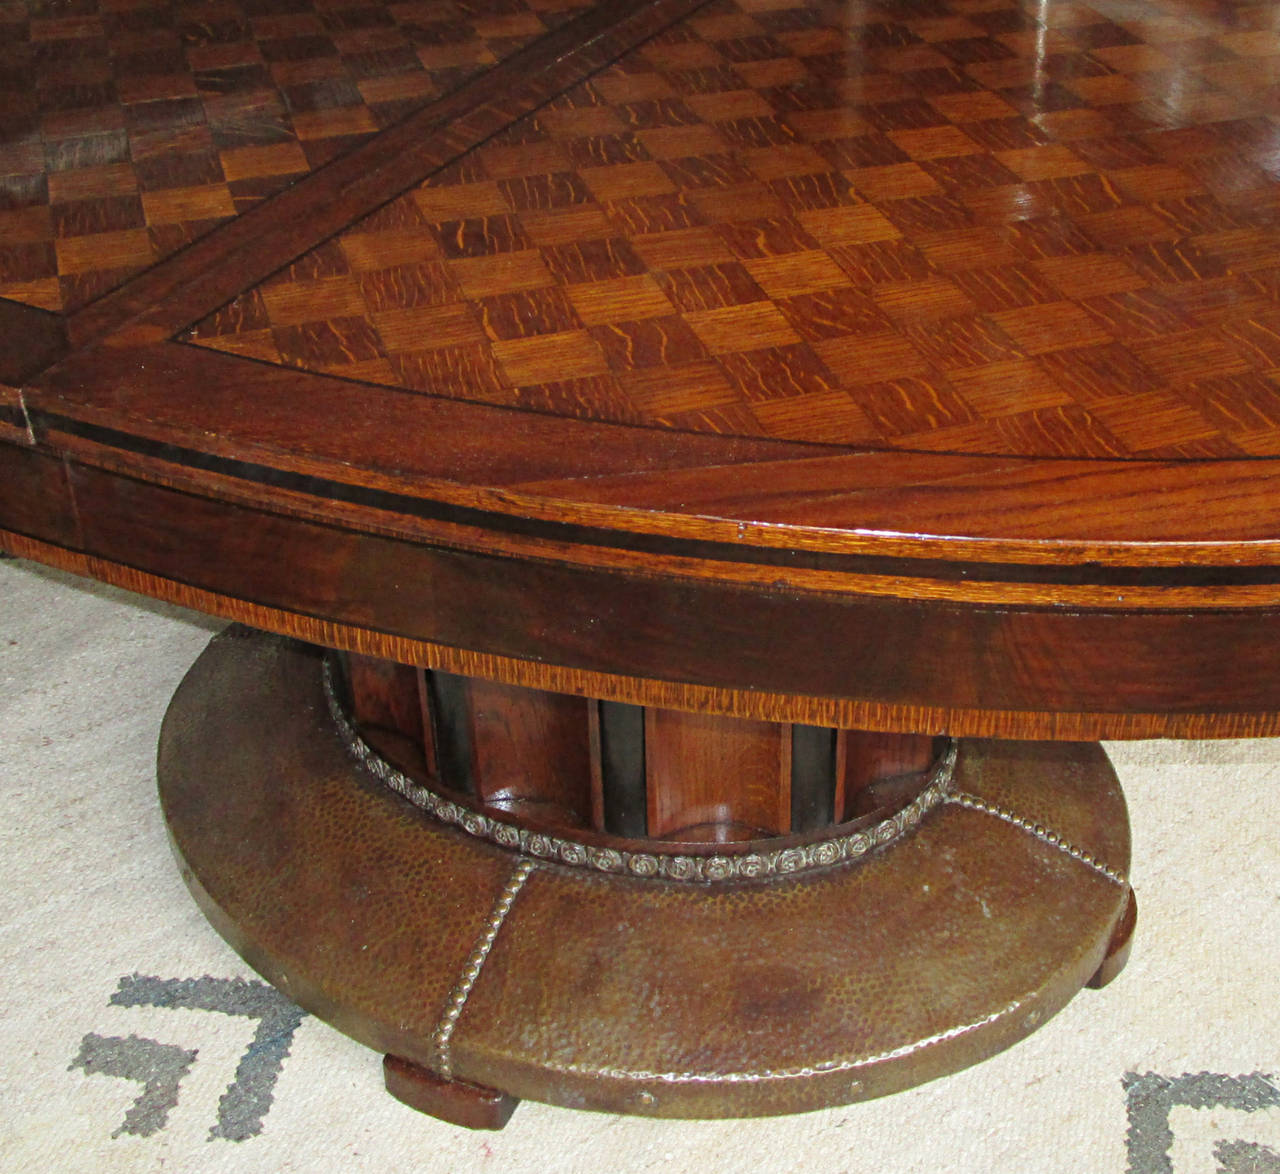 20th Century Oval Parquetry Dining Table with Hammered Copper Base by De Coene Freres For Sale